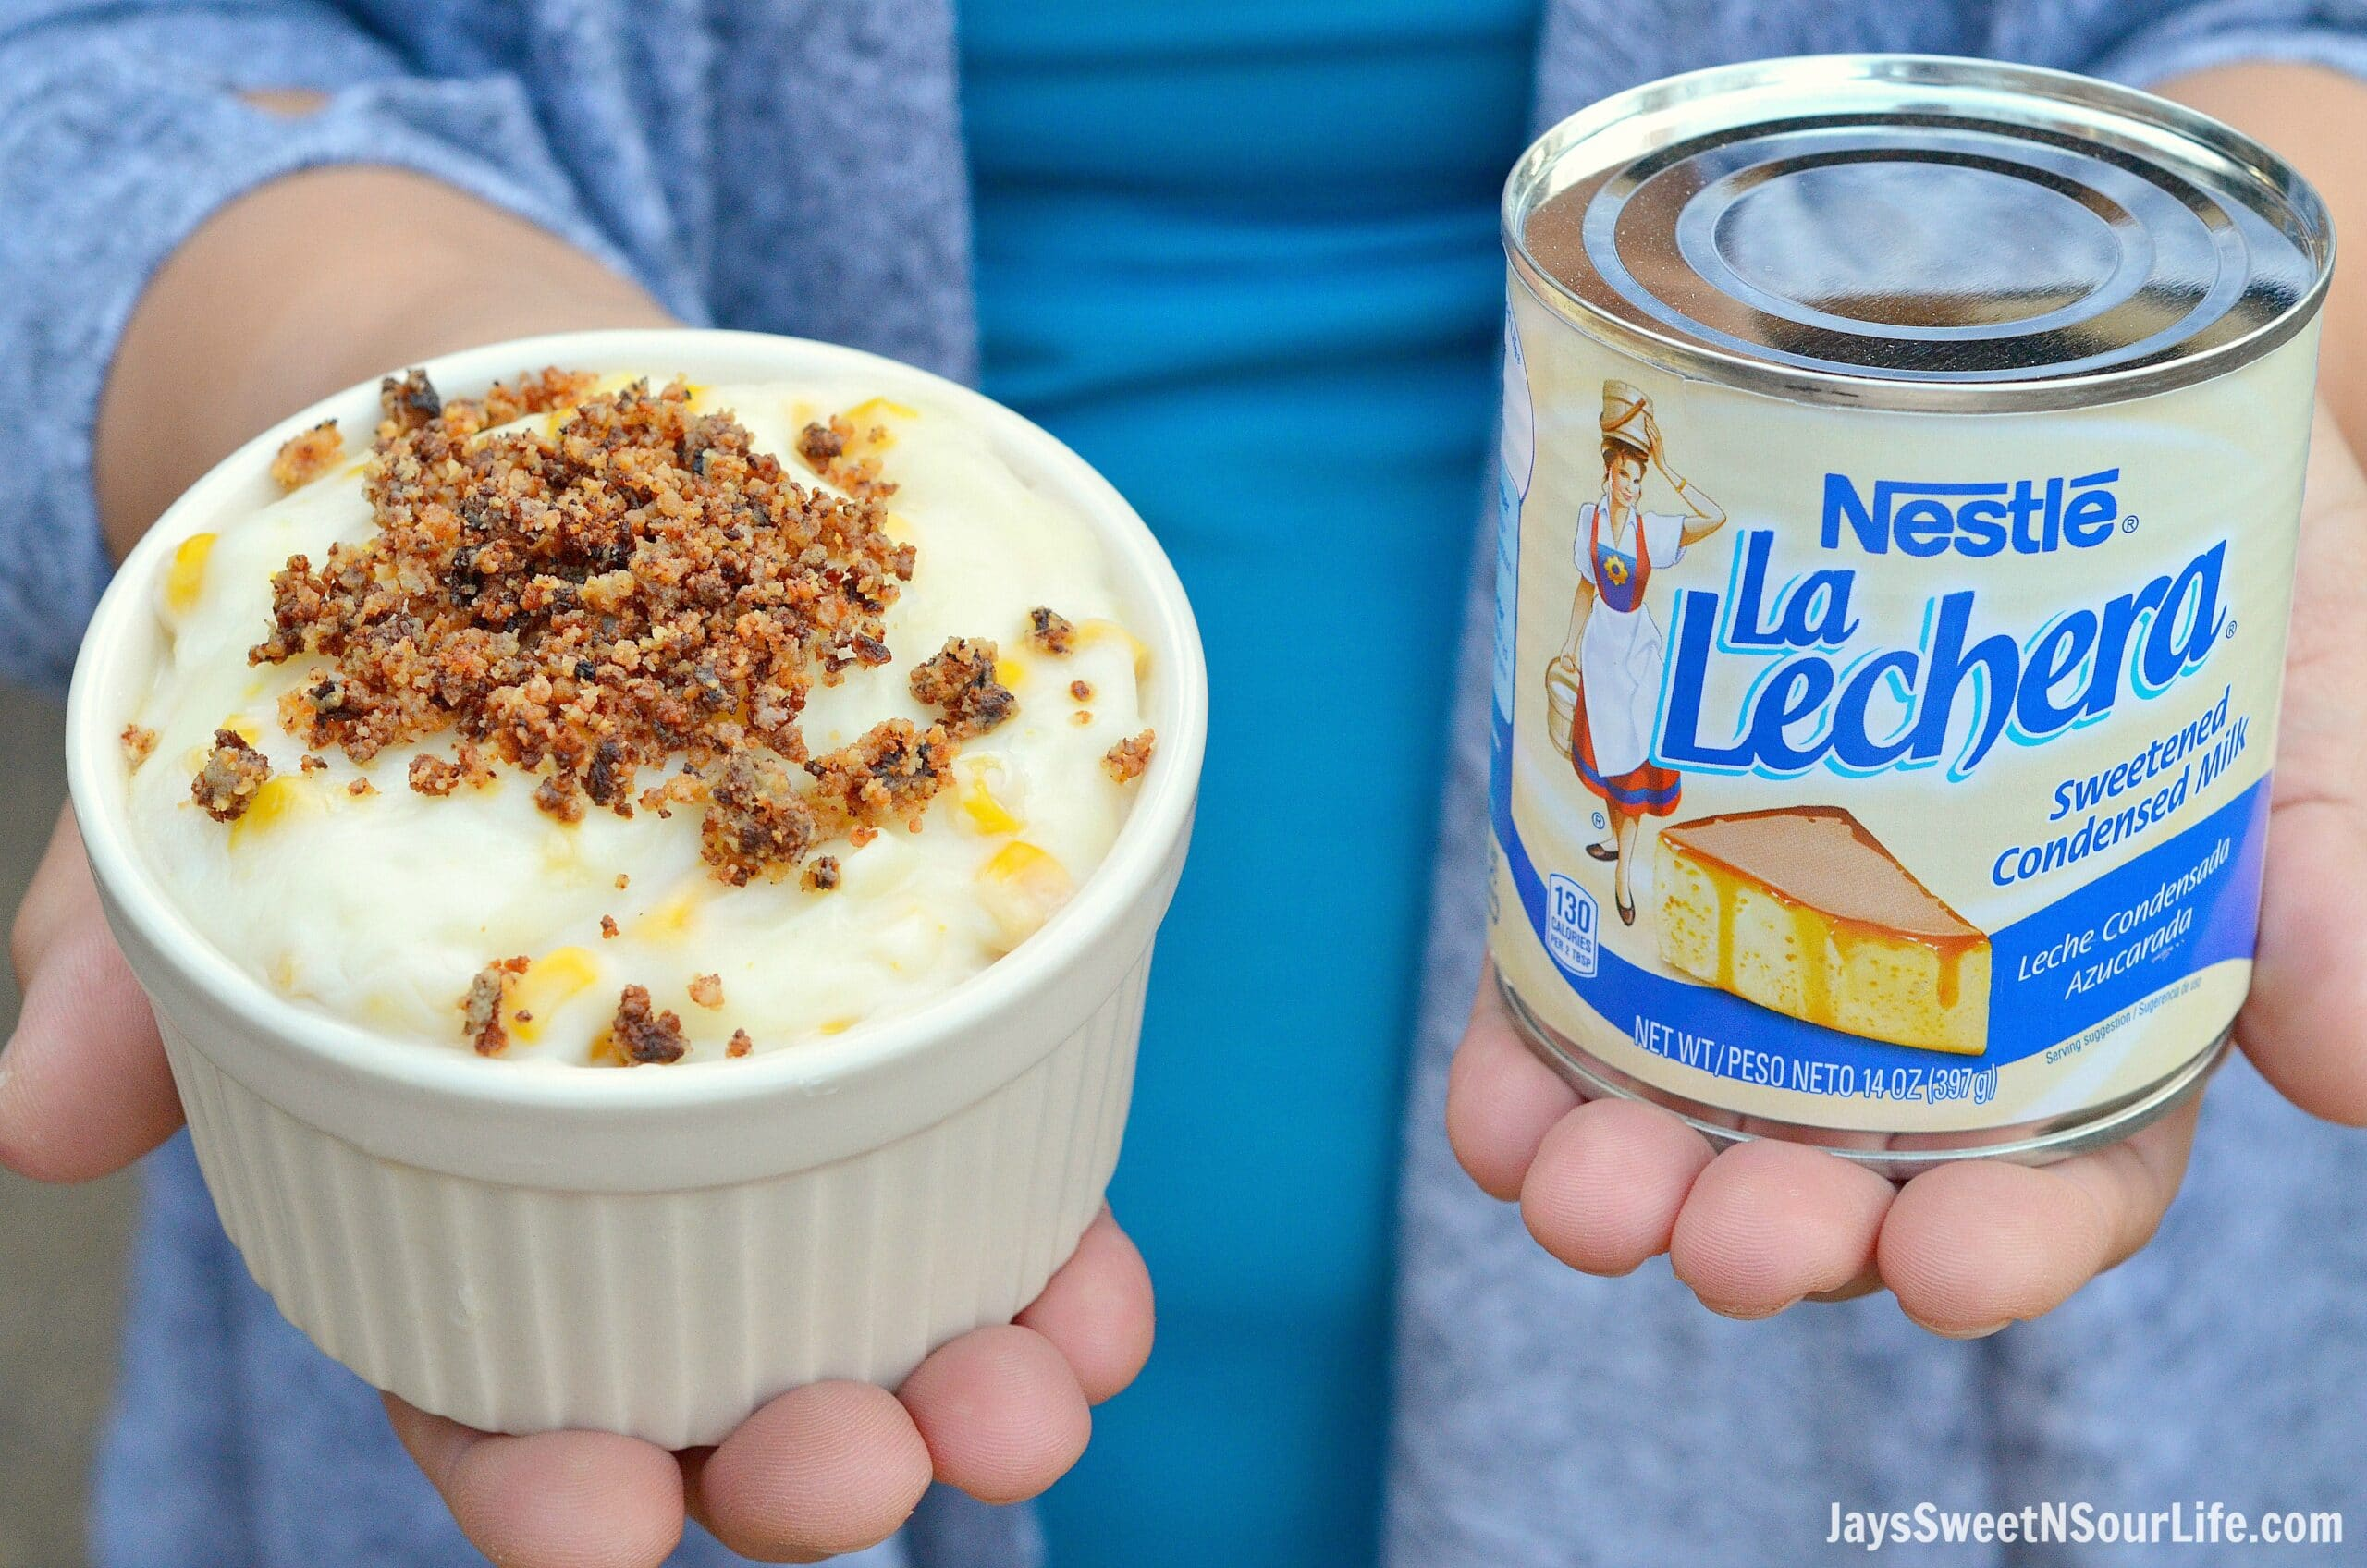 Maja Blanca Bowl In Hands With La Lechera. Maja Blanca is a popular Filipino dessert, it's thick creamy custard texture is sweet with bits of fresh yellow corn. Top it with fresh easy to make homemade Latik for a traditional Maja Blanca topping.